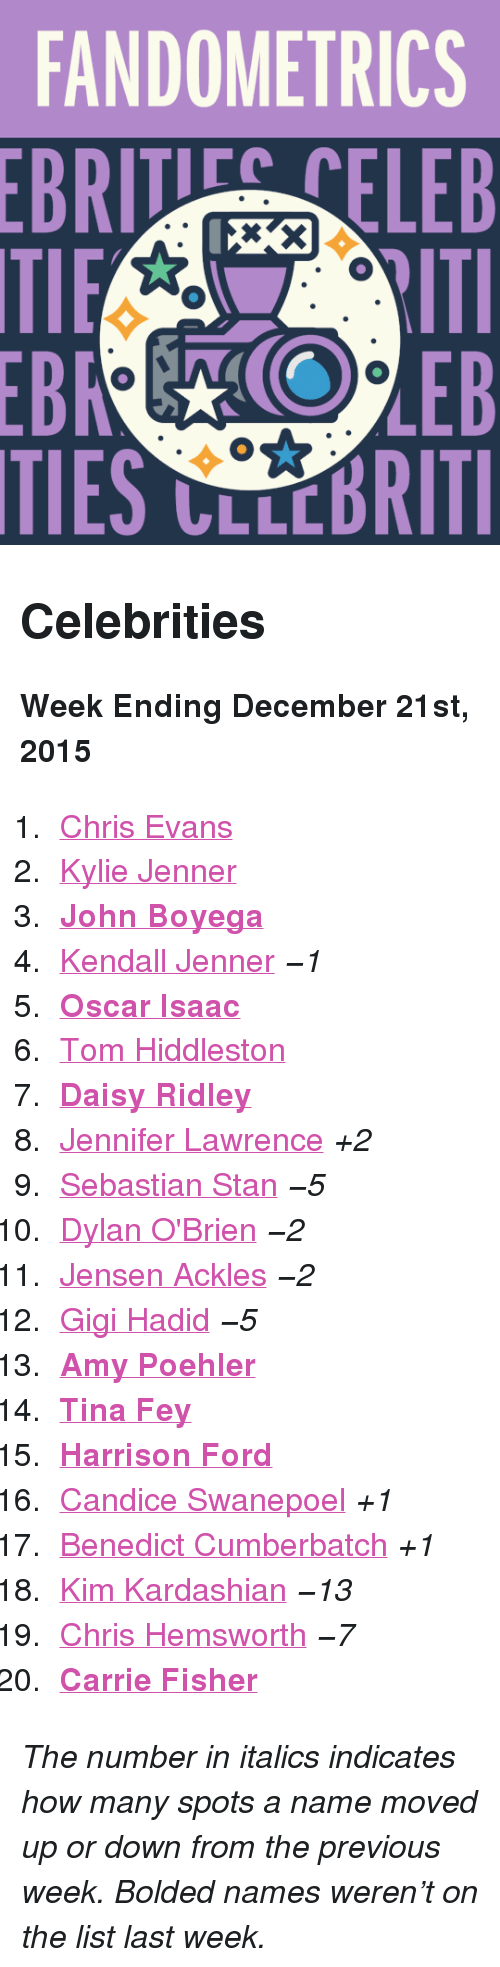 """Dylan O'Brien: FANDOMETRICS  BRTELEB  TIES CLLCBRITI <h2>Celebrities</h2><p><b>Week Ending December 21st, 2015</b></p><ol><li><a href=""""http://www.tumblr.com/search/chris%20evans"""">Chris Evans</a></li>  <li><a href=""""http://www.tumblr.com/search/kylie%20jenner"""">Kylie Jenner</a></li>  <li><a href=""""http://www.tumblr.com/search/john%20boyega""""><b>John Boyega</b></a></li>  <li><a href=""""http://www.tumblr.com/search/kendall%20jenner"""">Kendall Jenner</a><i>−1</i></li>  <li><a href=""""http://www.tumblr.com/search/oscar%20isaac""""><b>Oscar Isaac</b></a></li>  <li><a href=""""http://www.tumblr.com/search/tom%20hiddleston"""">Tom Hiddleston</a></li>  <li><a href=""""http://www.tumblr.com/search/daisy%20ridley""""><b>Daisy Ridley</b></a></li>  <li><a href=""""http://www.tumblr.com/search/jennifer%20lawrence"""">Jennifer Lawrence</a><i>+2</i></li>  <li><a href=""""http://www.tumblr.com/search/sebastian%20stan"""">Sebastian Stan</a><i>−5</i></li>  <li><a href=""""http://www.tumblr.com/search/dylan%20o'brien"""">Dylan O'Brien</a><i>−2</i></li>  <li><a href=""""http://www.tumblr.com/search/jensen%20ackles"""">Jensen Ackles</a><i>−2</i></li>  <li><a href=""""http://www.tumblr.com/search/gigi%20hadid"""">Gigi Hadid</a><i>−5</i></li>  <li><a href=""""http://www.tumblr.com/search/amy%20poehler""""><b>Amy Poehler</b></a></li>  <li><a href=""""http://www.tumblr.com/search/tina%20fey""""><b>Tina Fey</b></a></li>  <li><a href=""""http://www.tumblr.com/search/harrison%20ford""""><b>Harrison Ford</b></a></li>  <li><a href=""""http://www.tumblr.com/search/candice%20swanepoel"""">Candice Swanepoel</a><i>+1</i></li>  <li><a href=""""http://www.tumblr.com/search/benedict%20cumberbatch"""">Benedict Cumberbatch</a><i>+1</i></li>  <li><a href=""""http://www.tumblr.com/search/kim%20kardashian"""">Kim Kardashian</a><i>−13</i></li>  <li><a href=""""http://www.tumblr.com/search/chris%20hemsworth"""">Chris Hemsworth</a><i>−7</i></li>  <li><a href=""""http://www.tumblr.com/search/carrie%20fisher""""><b>Carrie Fisher</b></a></li></ol><p><i>The number in italics indicates how many spots a name moved up """